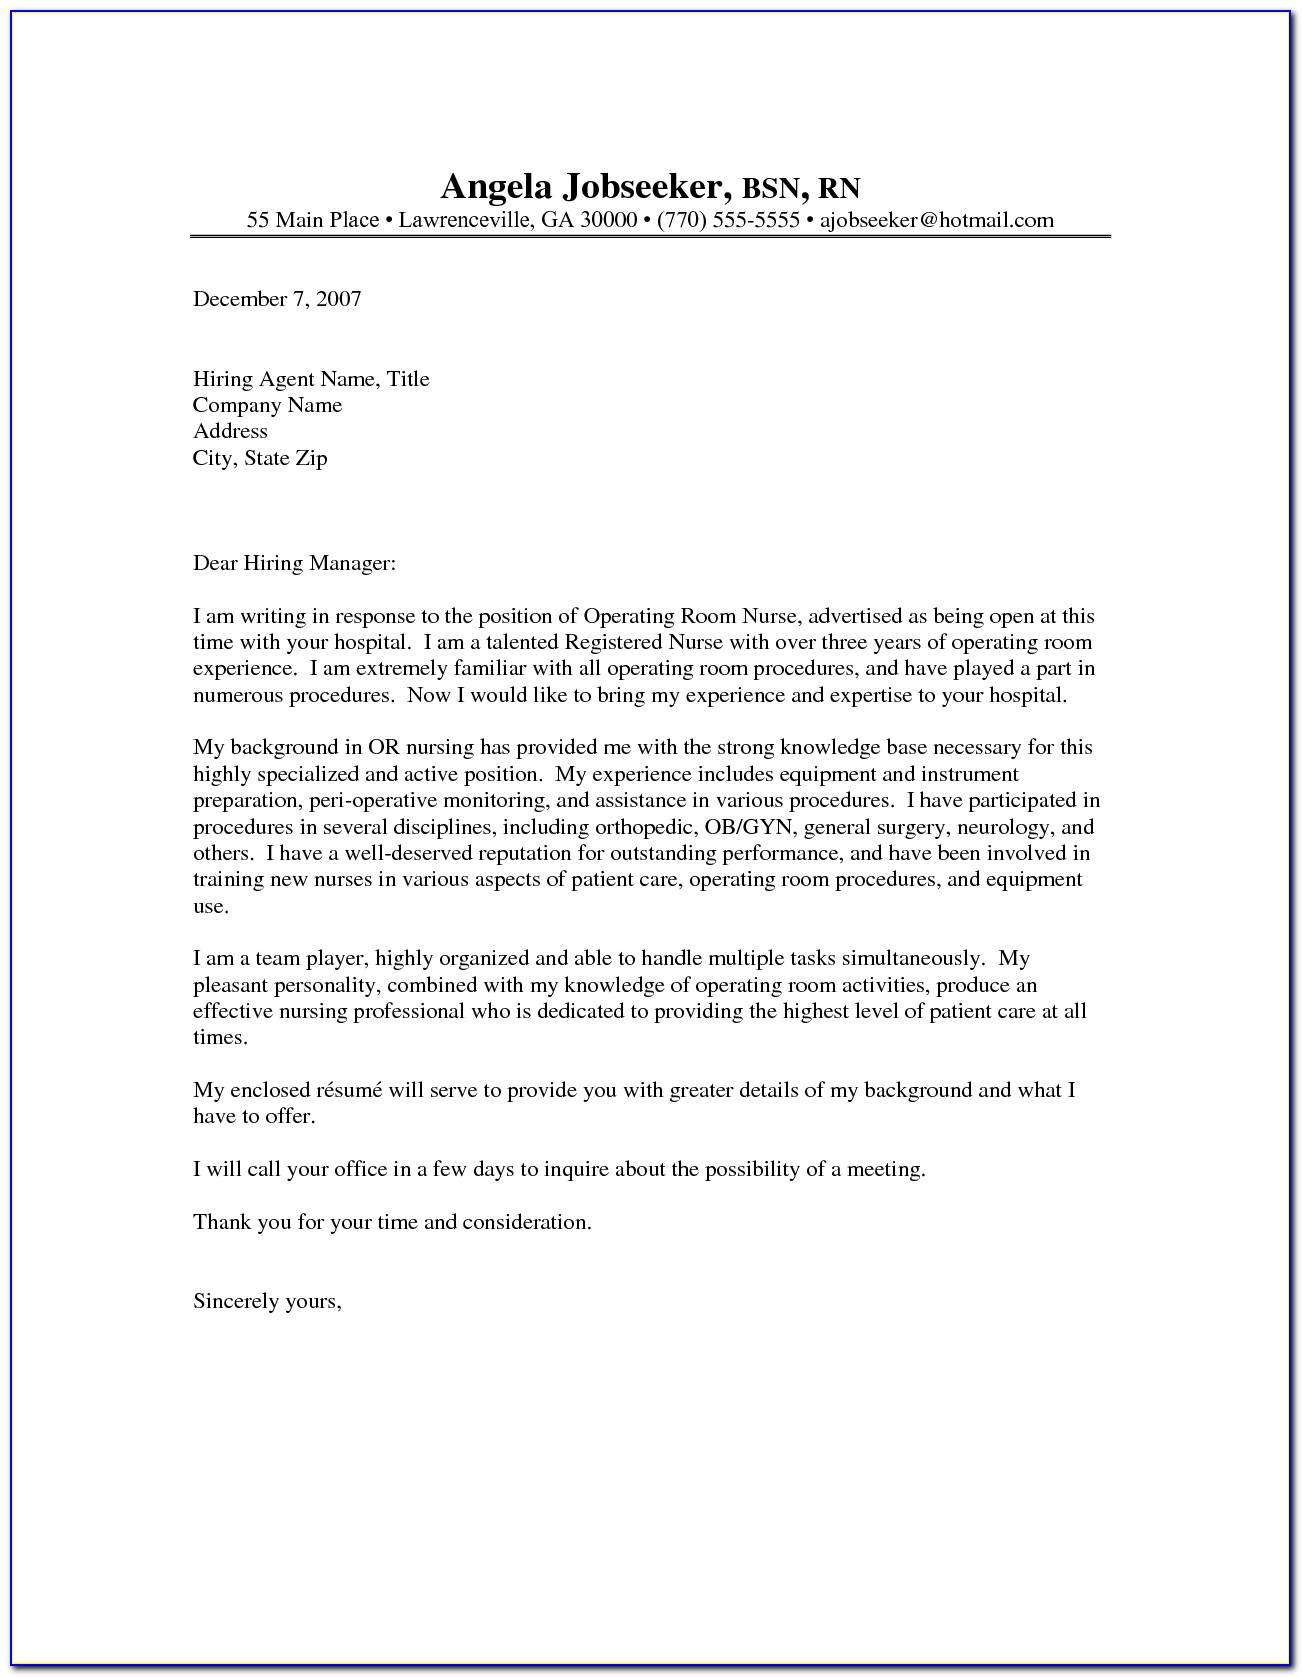 format of cover letter for resume vincegray2014 proper and template word should use Resume Proper Resume Cover Letter Format